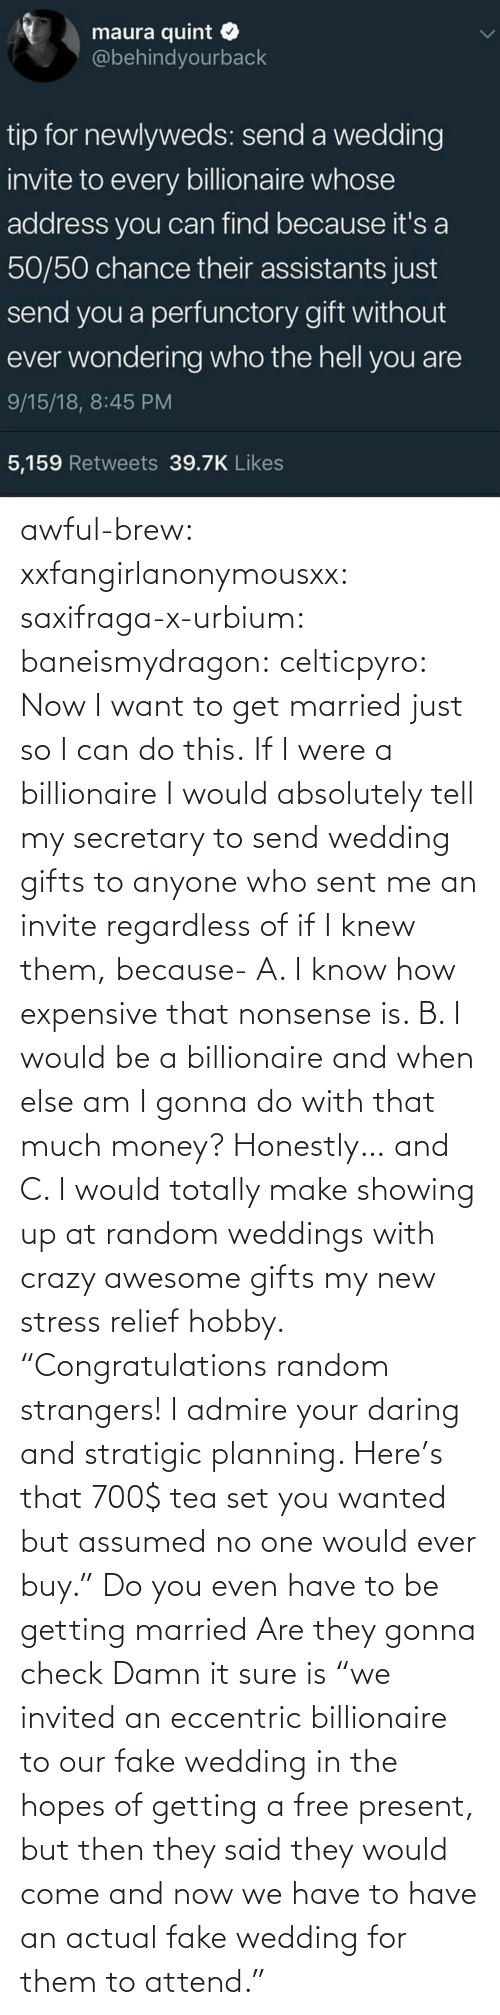 "fake: awful-brew:  xxfangirlanonymousxx:  saxifraga-x-urbium:  baneismydragon:  celticpyro: Now I want to get married just so I can do this.  If I were a billionaire I would absolutely tell my secretary to send wedding gifts to anyone who sent me an invite regardless of if I knew them, because- A. I know how expensive that nonsense is. B. I would be a billionaire and when else am I gonna do with that much money? Honestly… and C. I would totally make showing up at random weddings with crazy awesome gifts my new stress relief hobby. ""Congratulations random strangers! I admire your daring and stratigic planning. Here's that 700$ tea set you wanted but assumed no one would ever buy.""   Do you even have to be getting married Are they gonna check   Damn it sure is  ""we invited an eccentric billionaire to our fake wedding in the hopes of getting a free present, but then they said they would come and now we have to have an actual fake wedding for them to attend."""